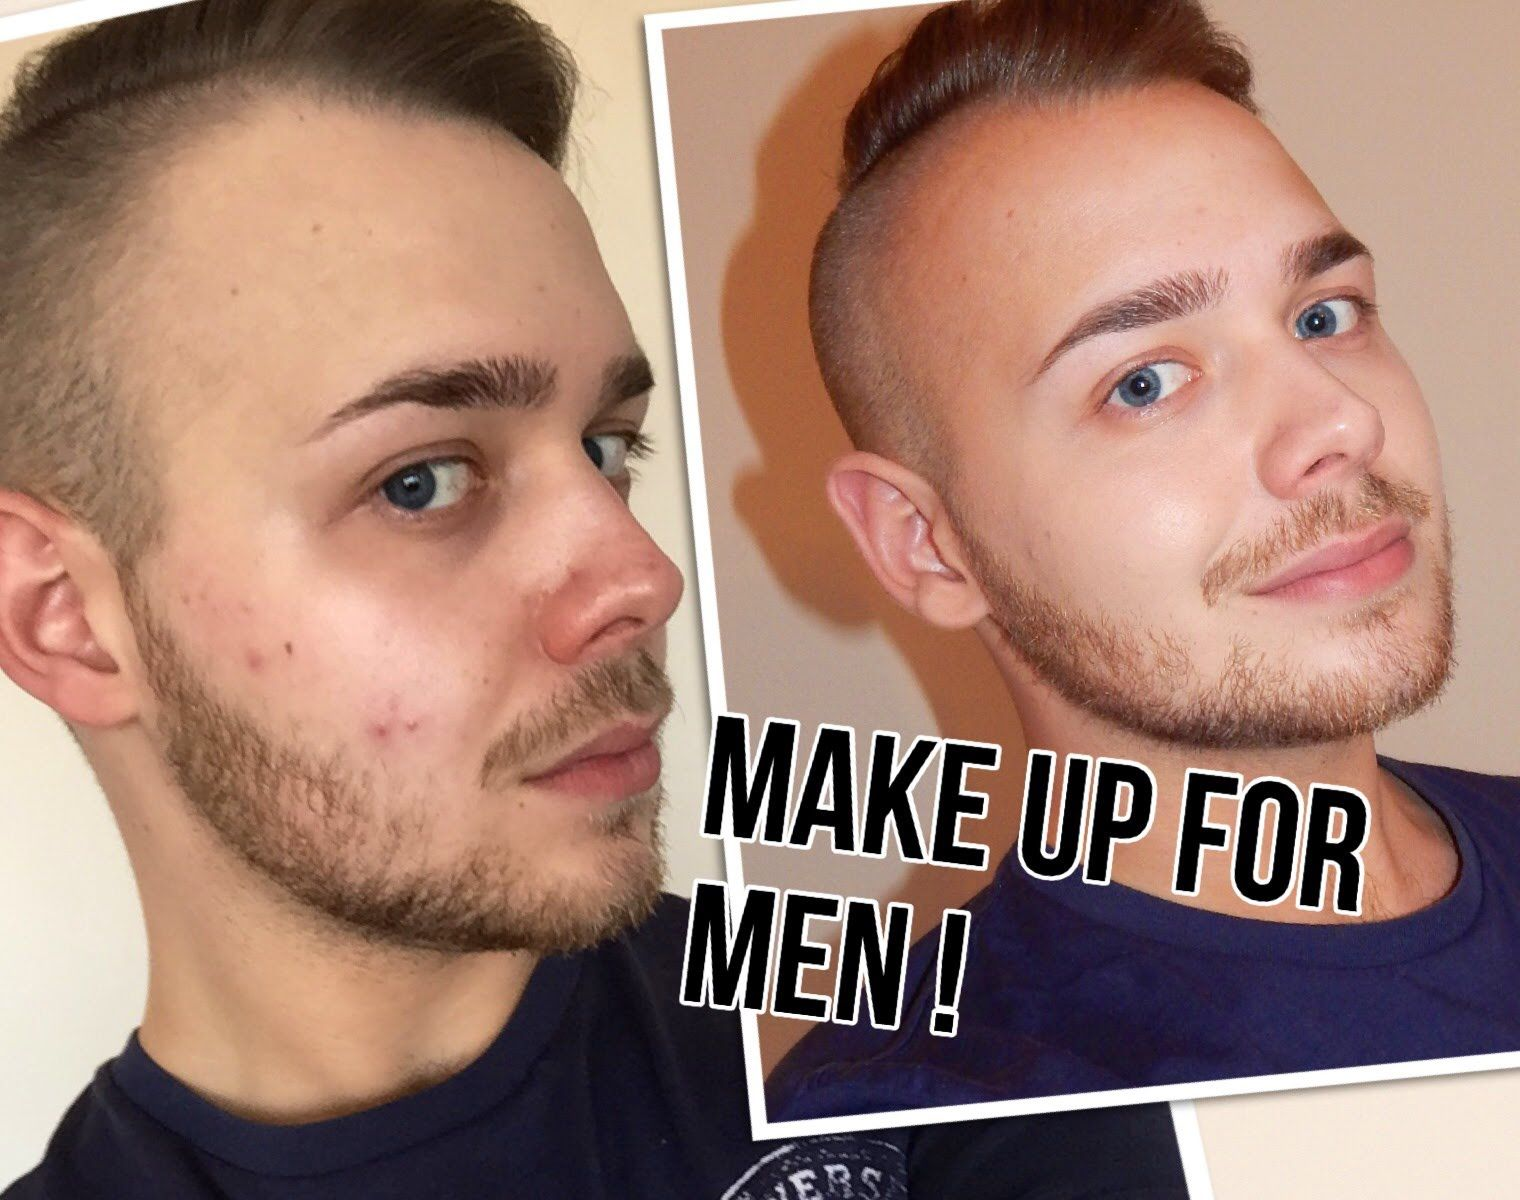 Makeup For Men - The Best Products, Tips and Demo. Natural